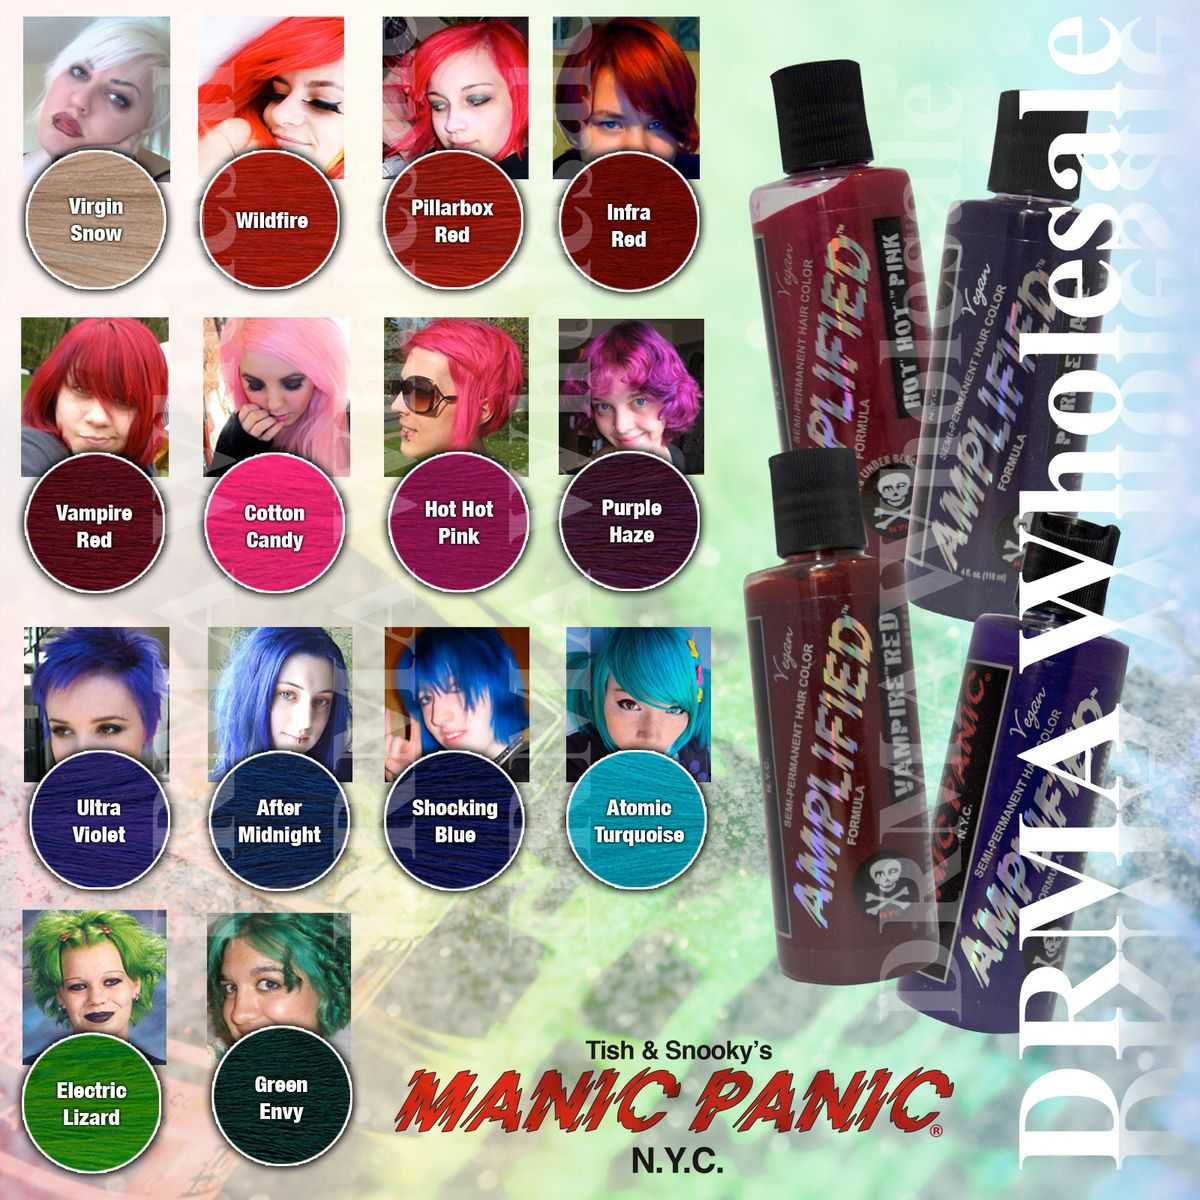 Manic Panic Hair Color Manic Panic Amplified Semi Permanent Vegan Hair Dye Color All Colors 4 Manic Panic Amplified Hair Dye Colors Vegan Hair Dye